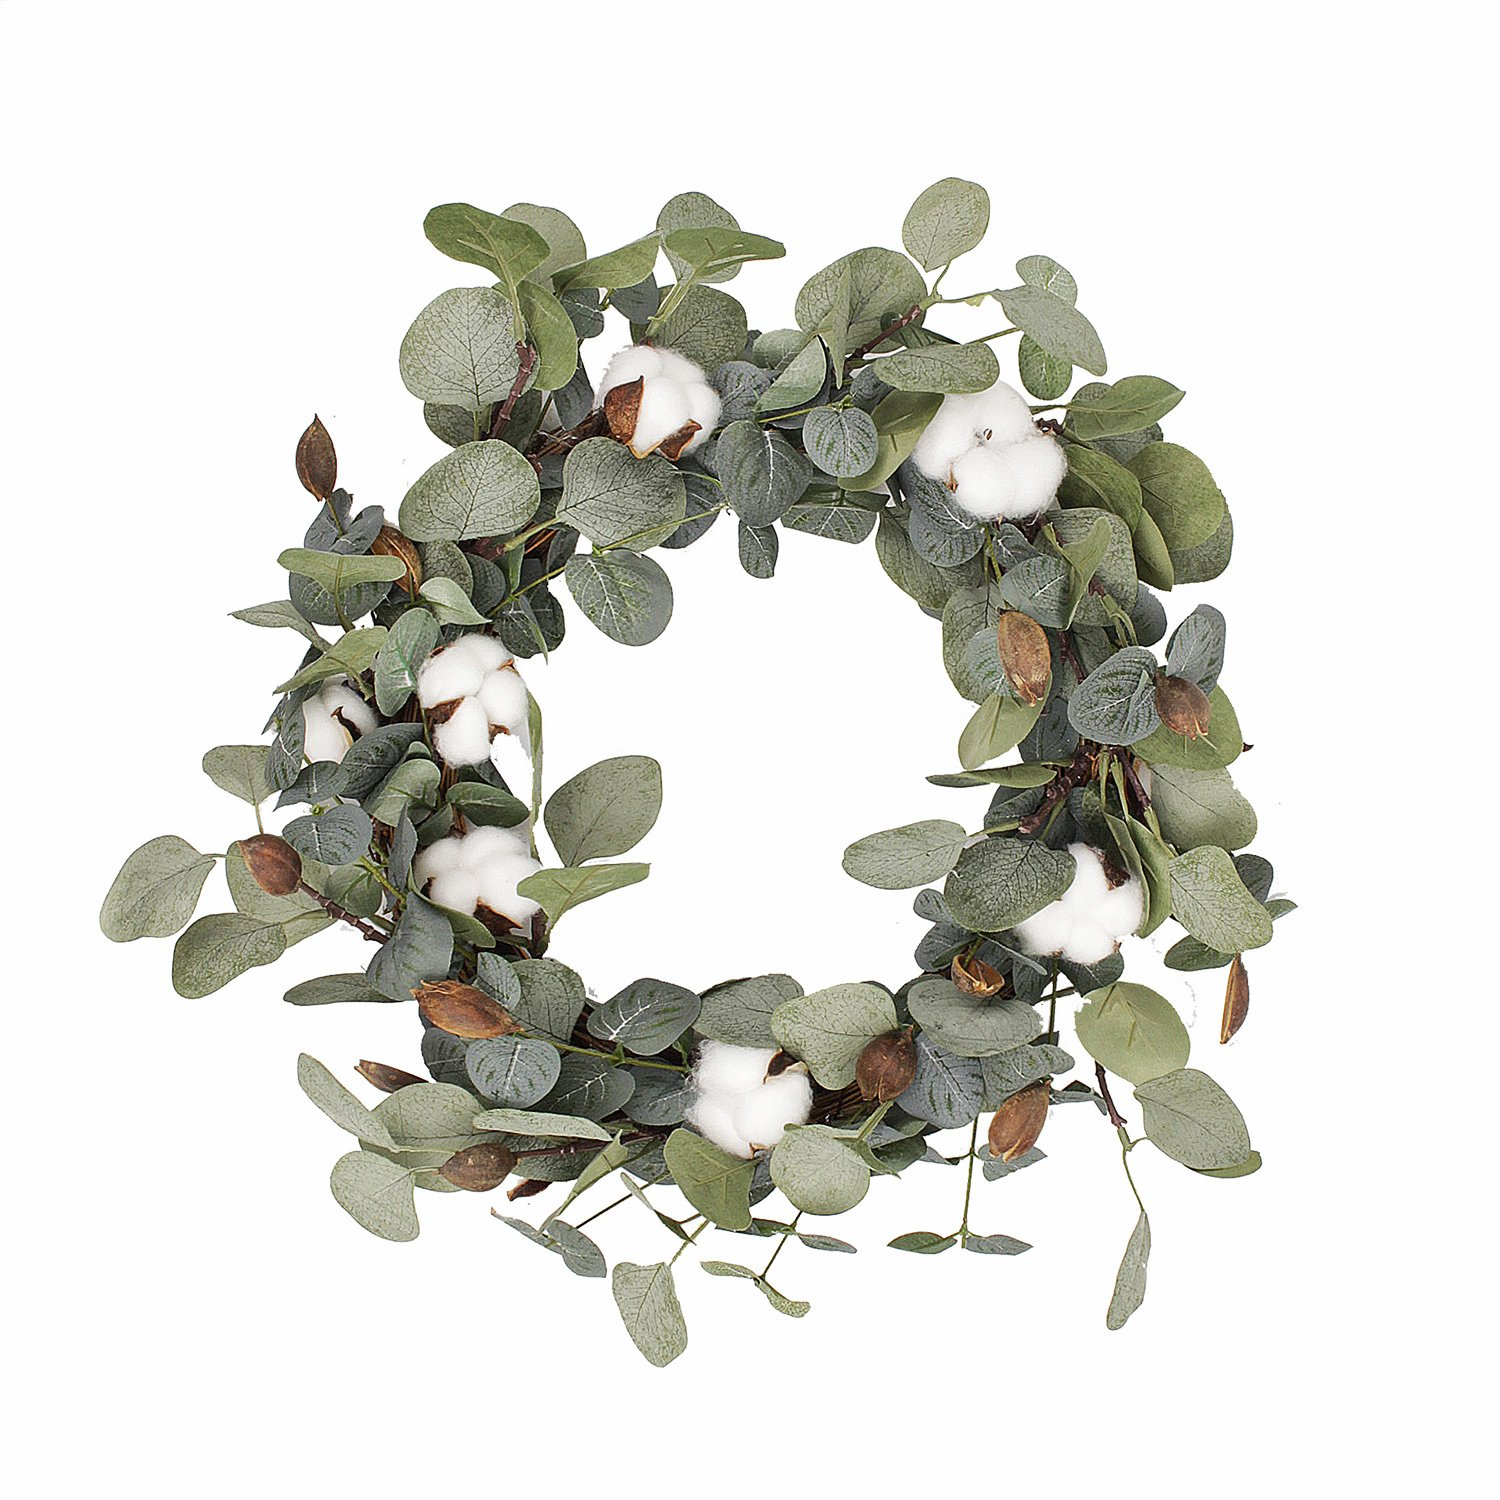 FAVOWREATH 2018 Vitality Series FAVO-W48 Handmade 15 inch Green Leaf,Cotton Grapevine Wreath For Summer/Fall Festival Celebration Front Door/Wall/Fireplace Laurel/Eucalyptus Hanger Home Relaxed Decor by FAVOWREATH